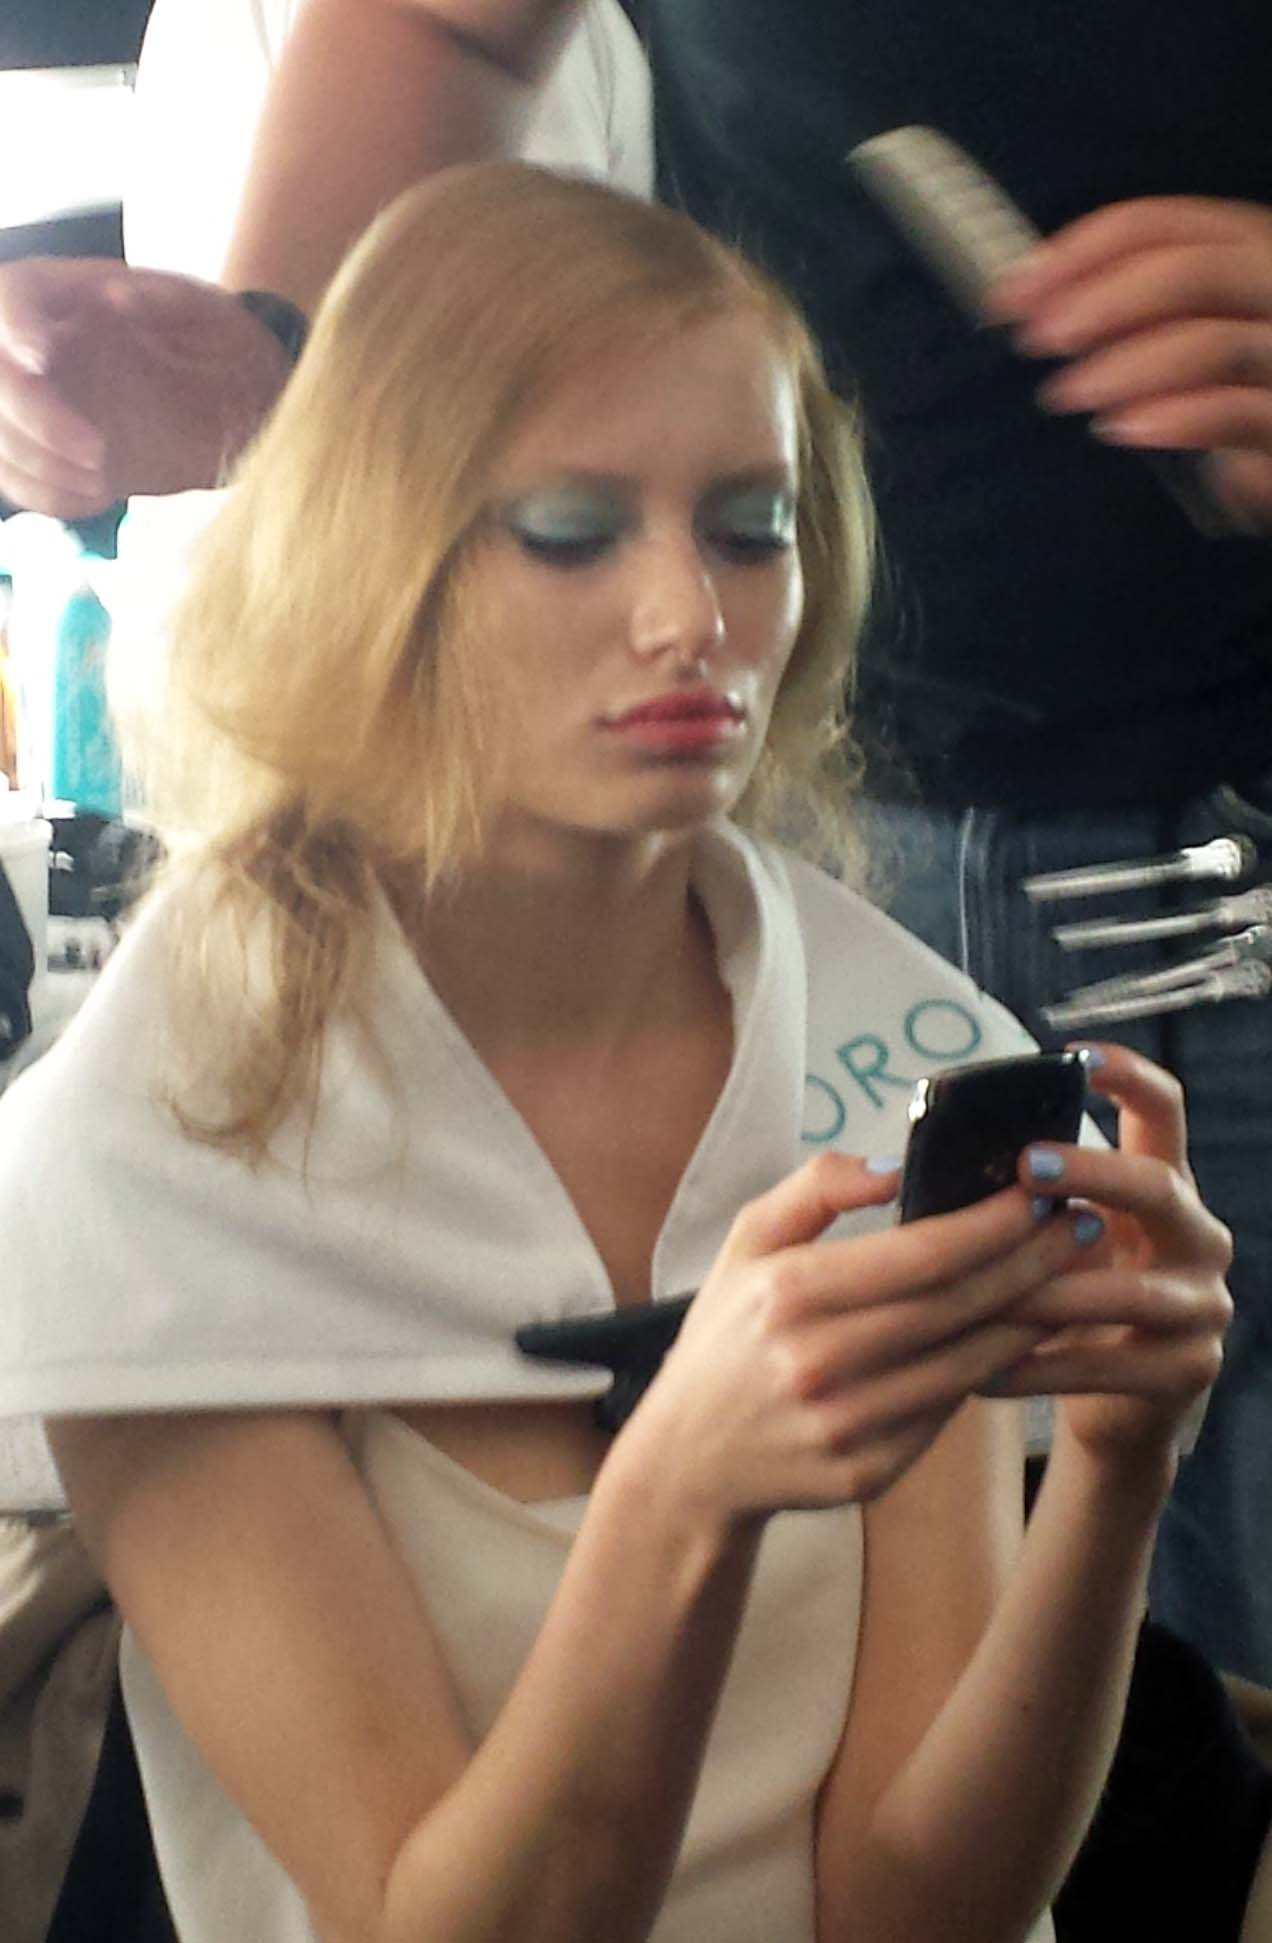 A model backstage getting her hair done.